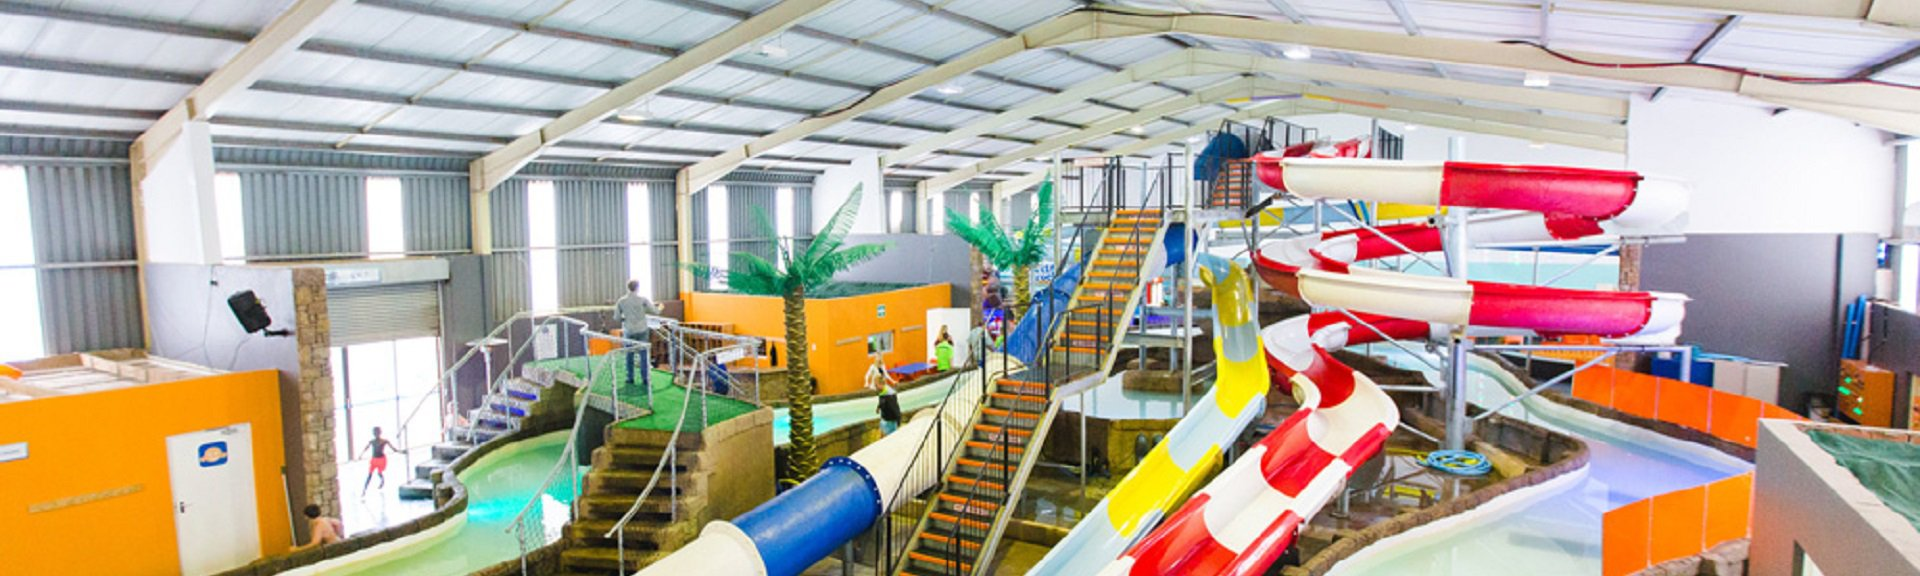 Wet Rock Adventures | Durban | Kids Indoor Party and Play Venue